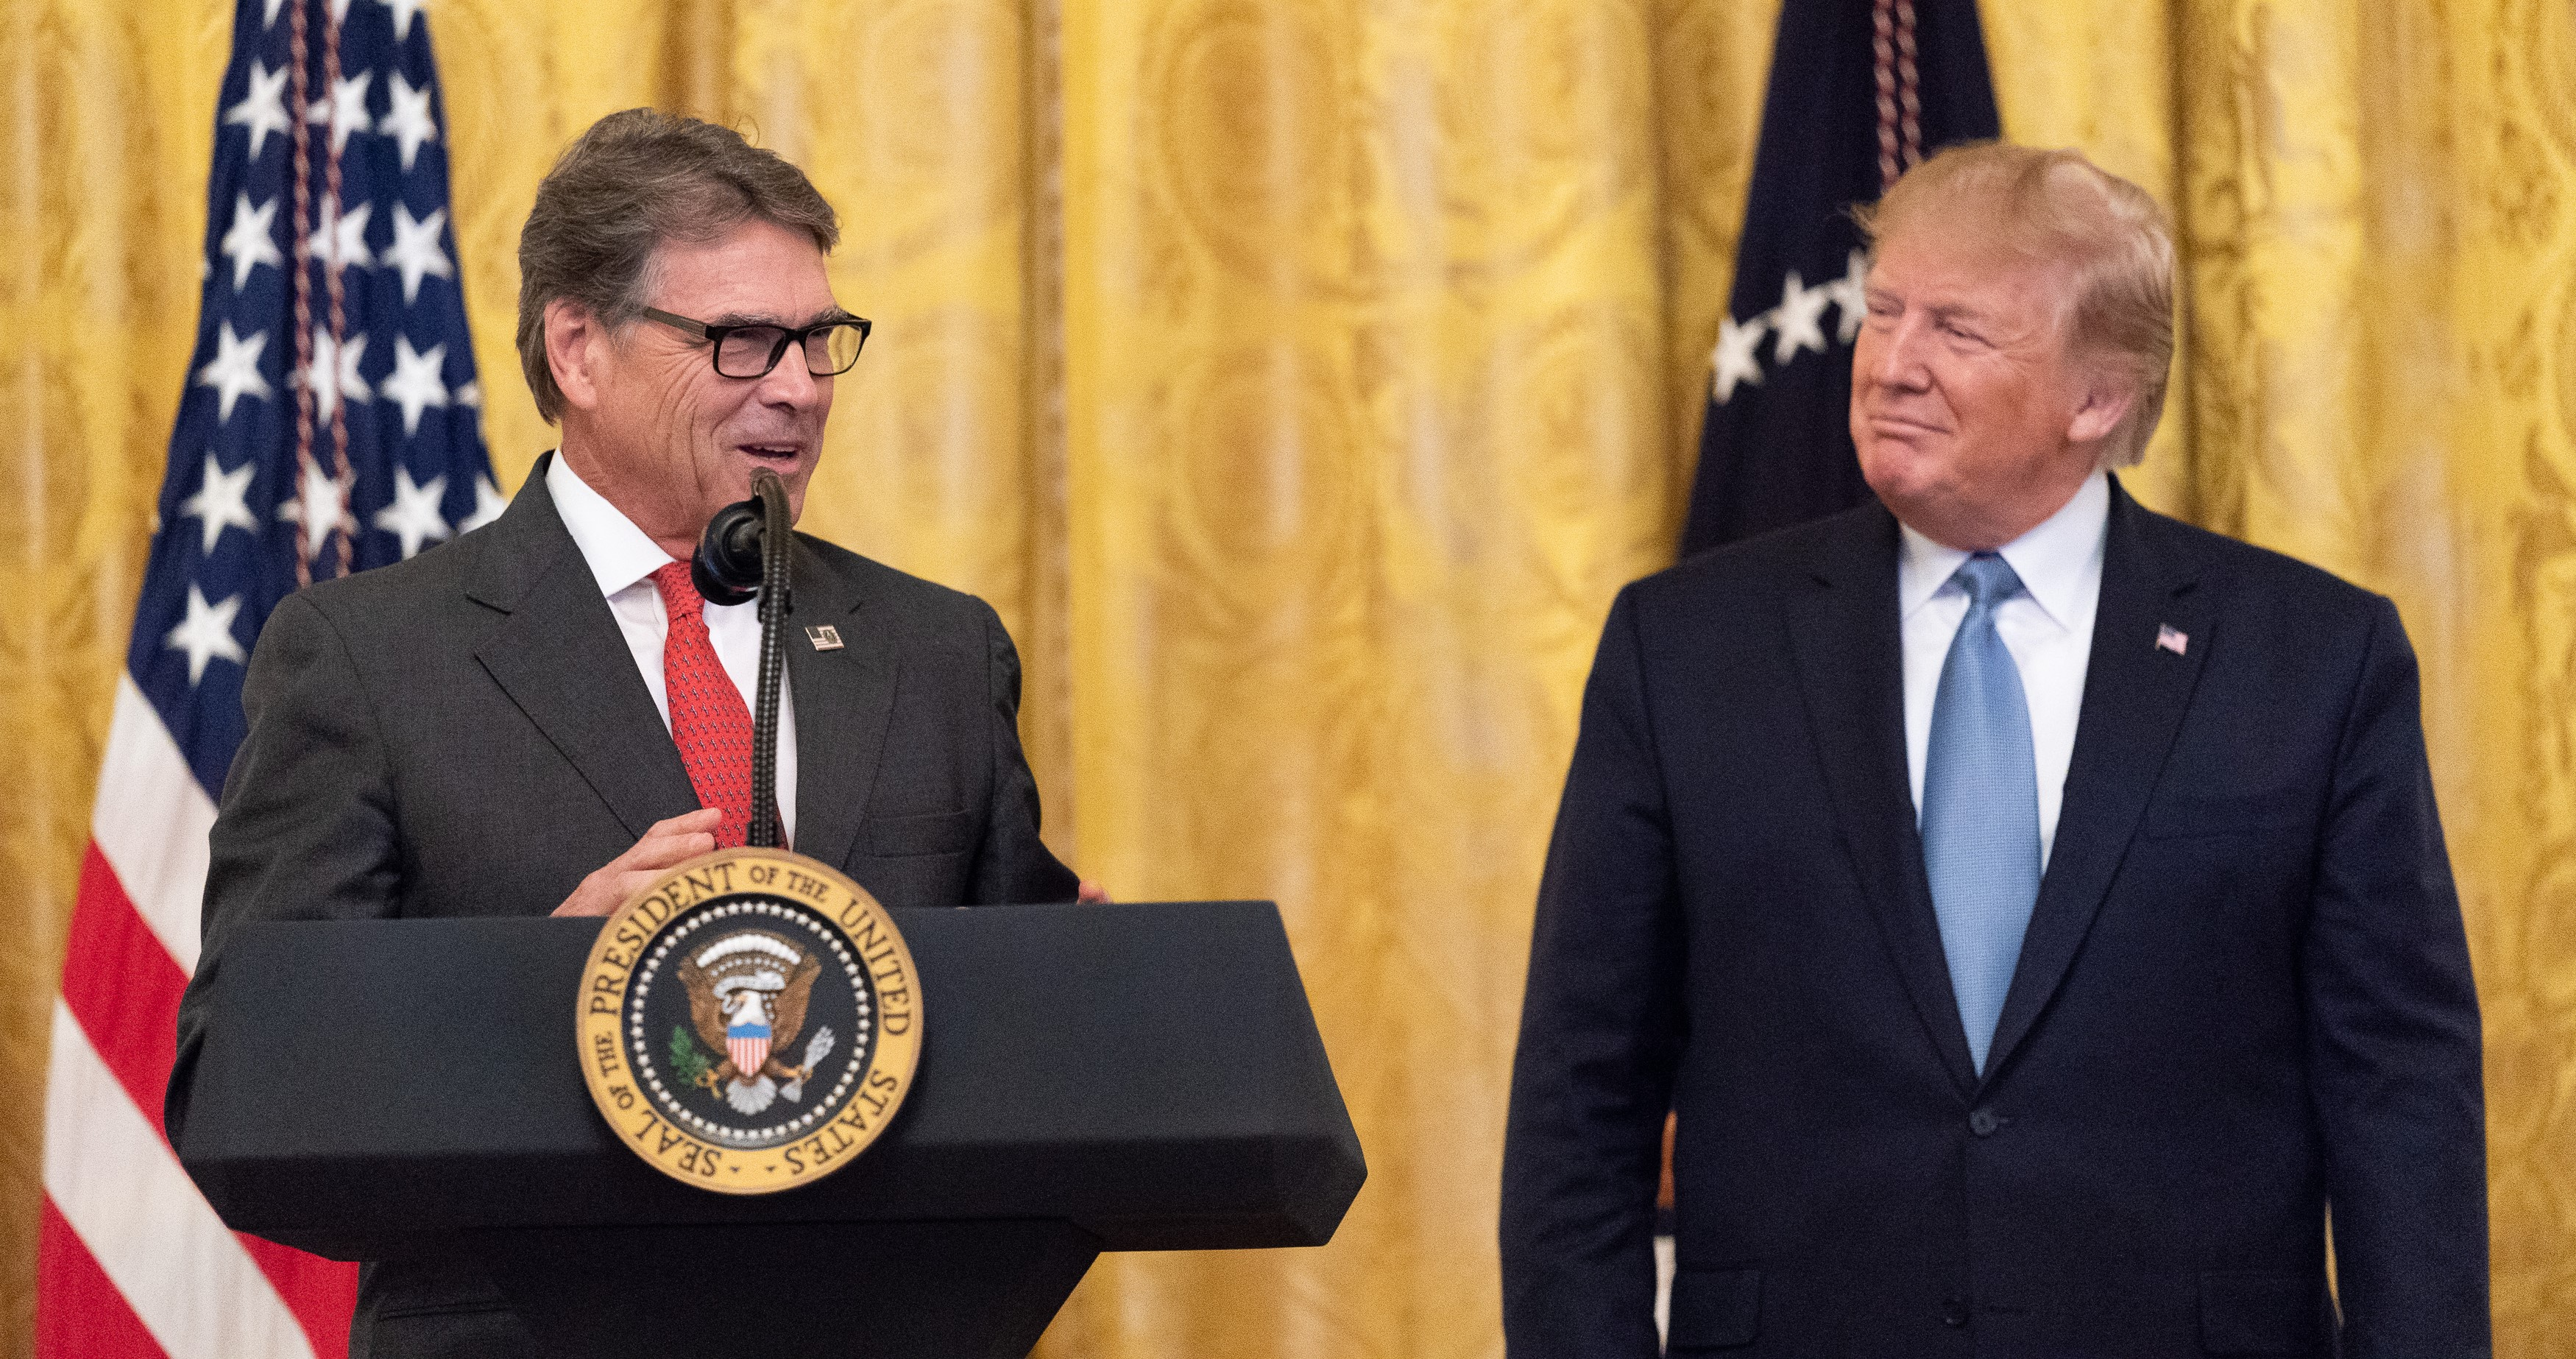 Energy Secretary Rick Perry, Giuliani associates subpoenaed in impeachment investigation